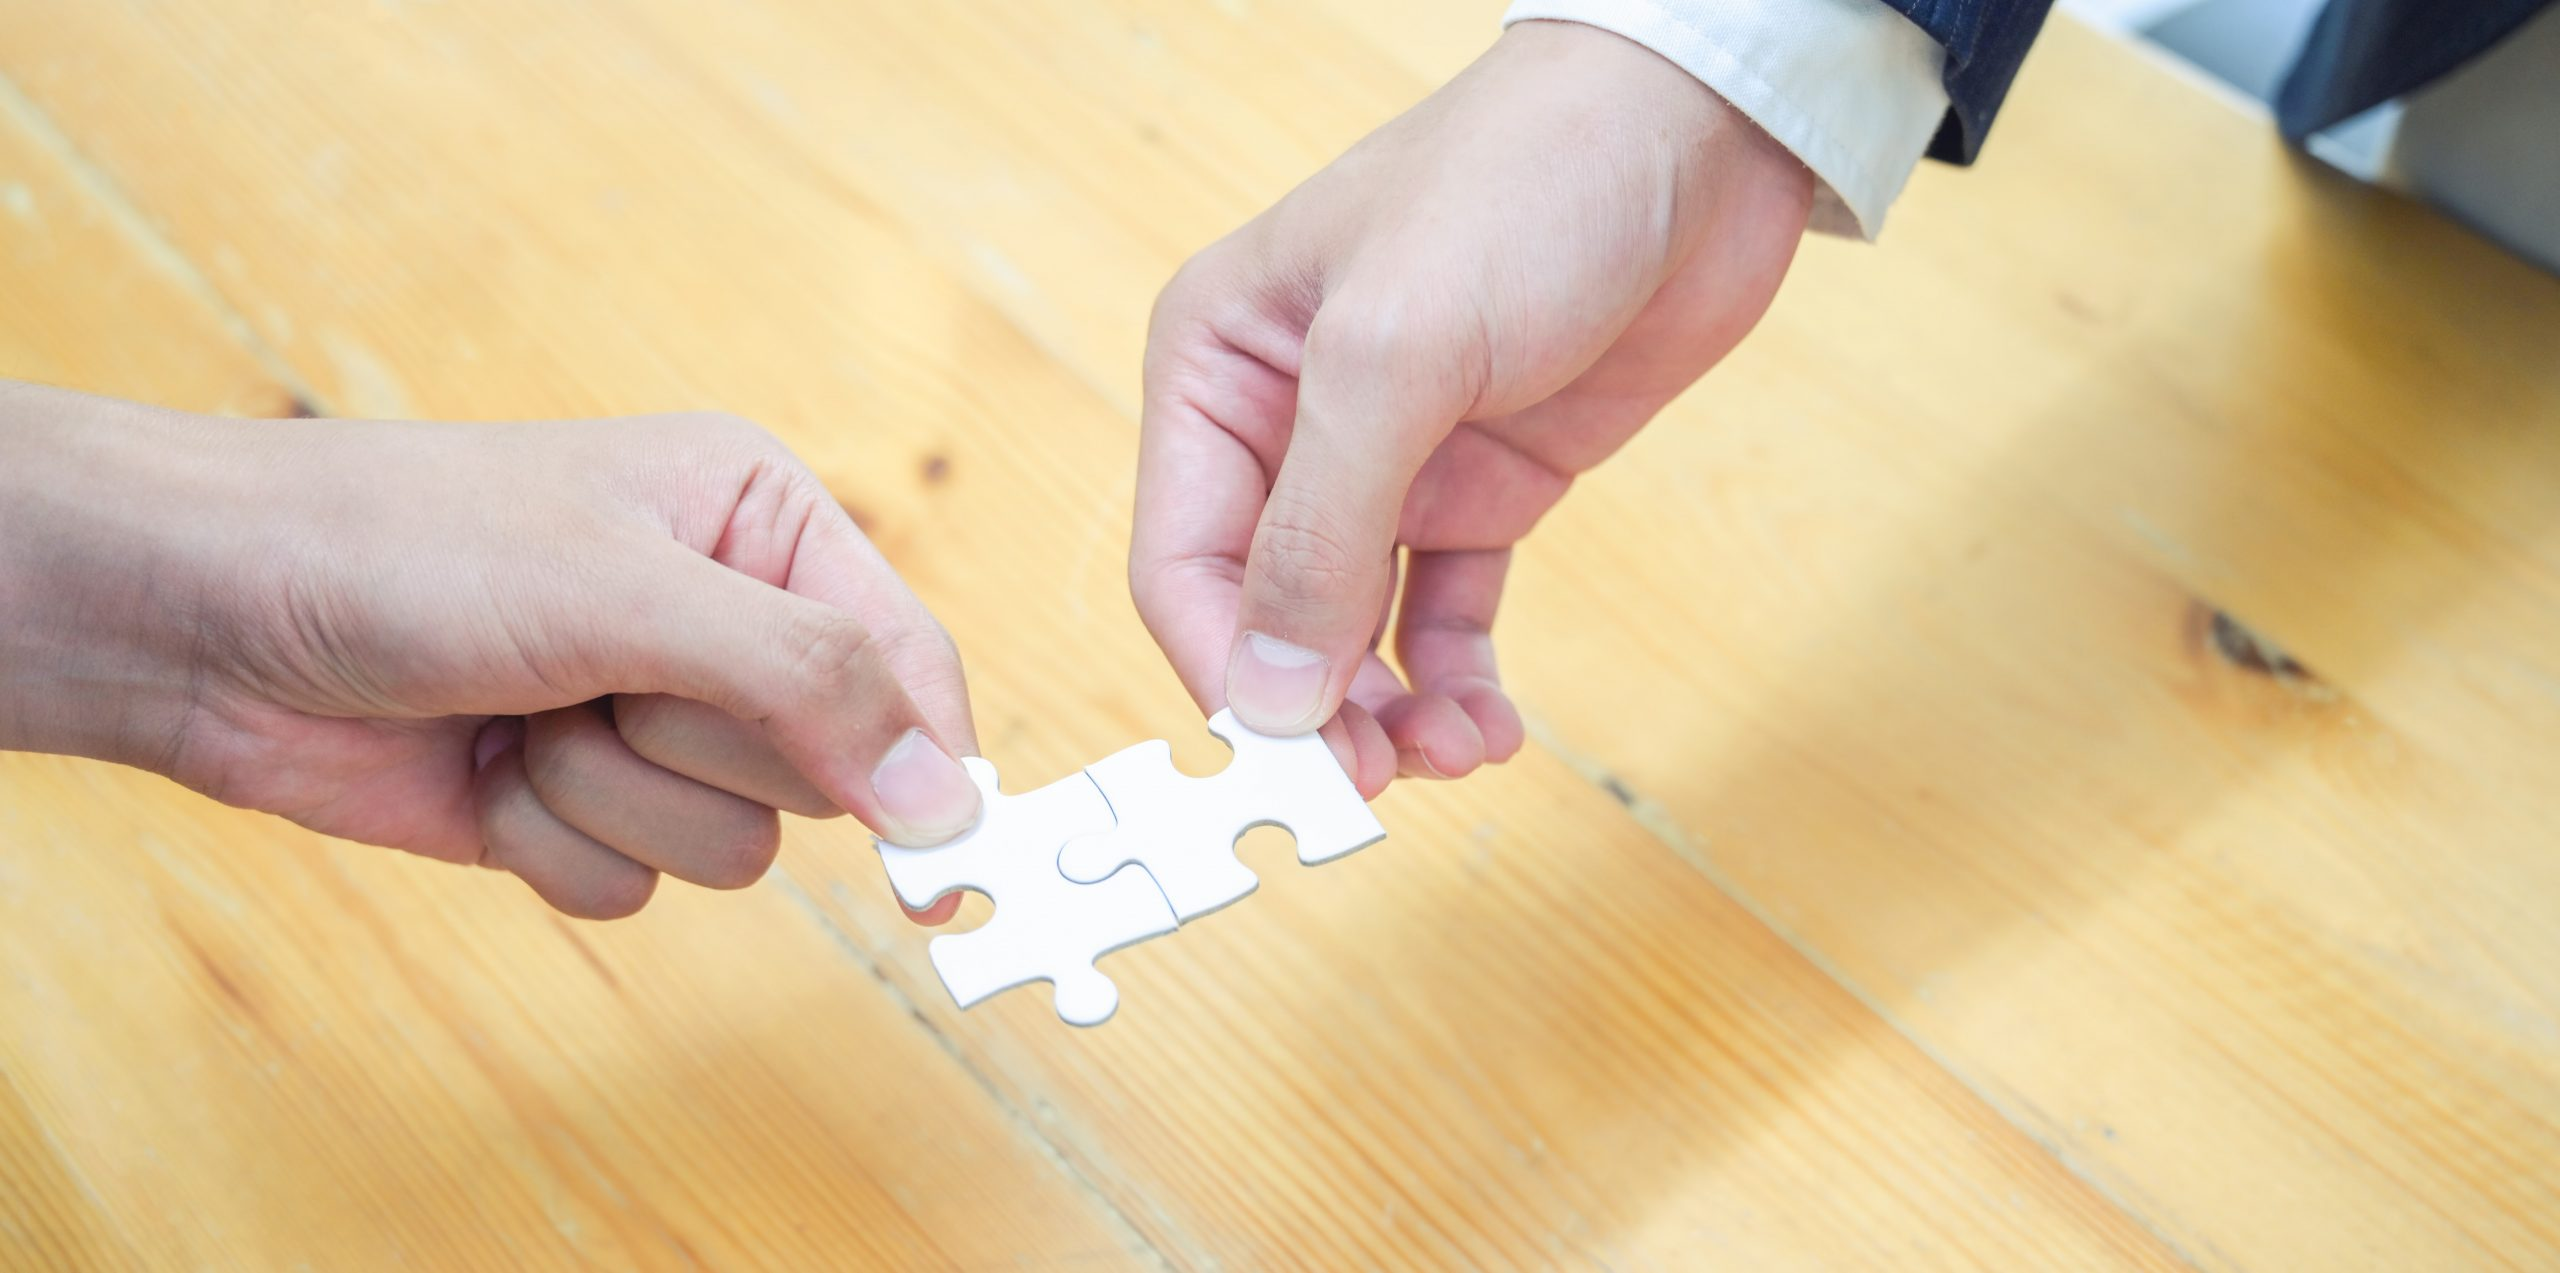 Jigsaw pieces being placed together representing first aid, first aid for mental health and wellbeing coming together in our holistic wellbeing programmes